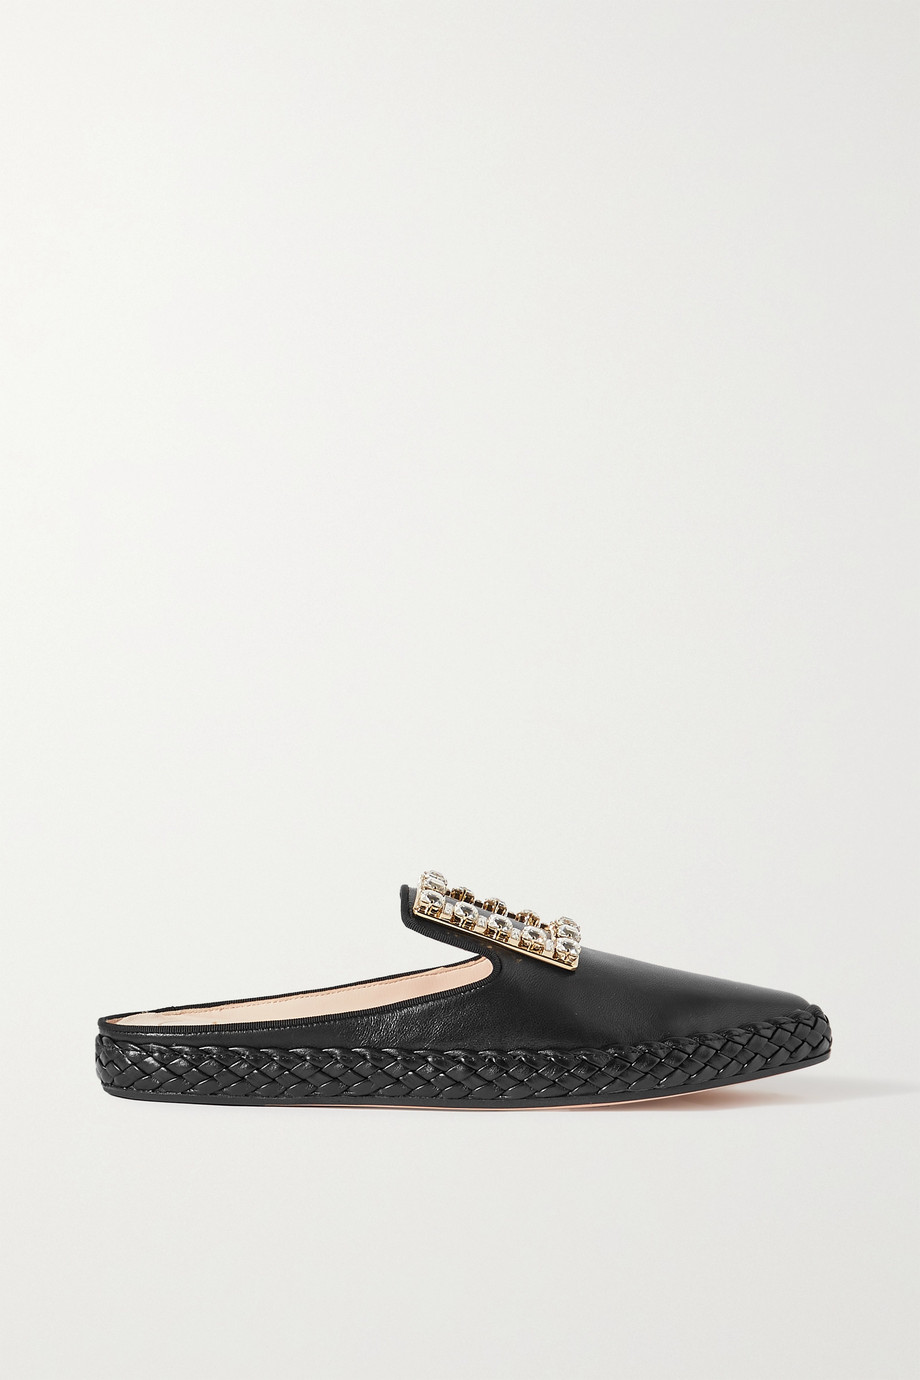 Roger Vivier Crystal-embellished leather slippers